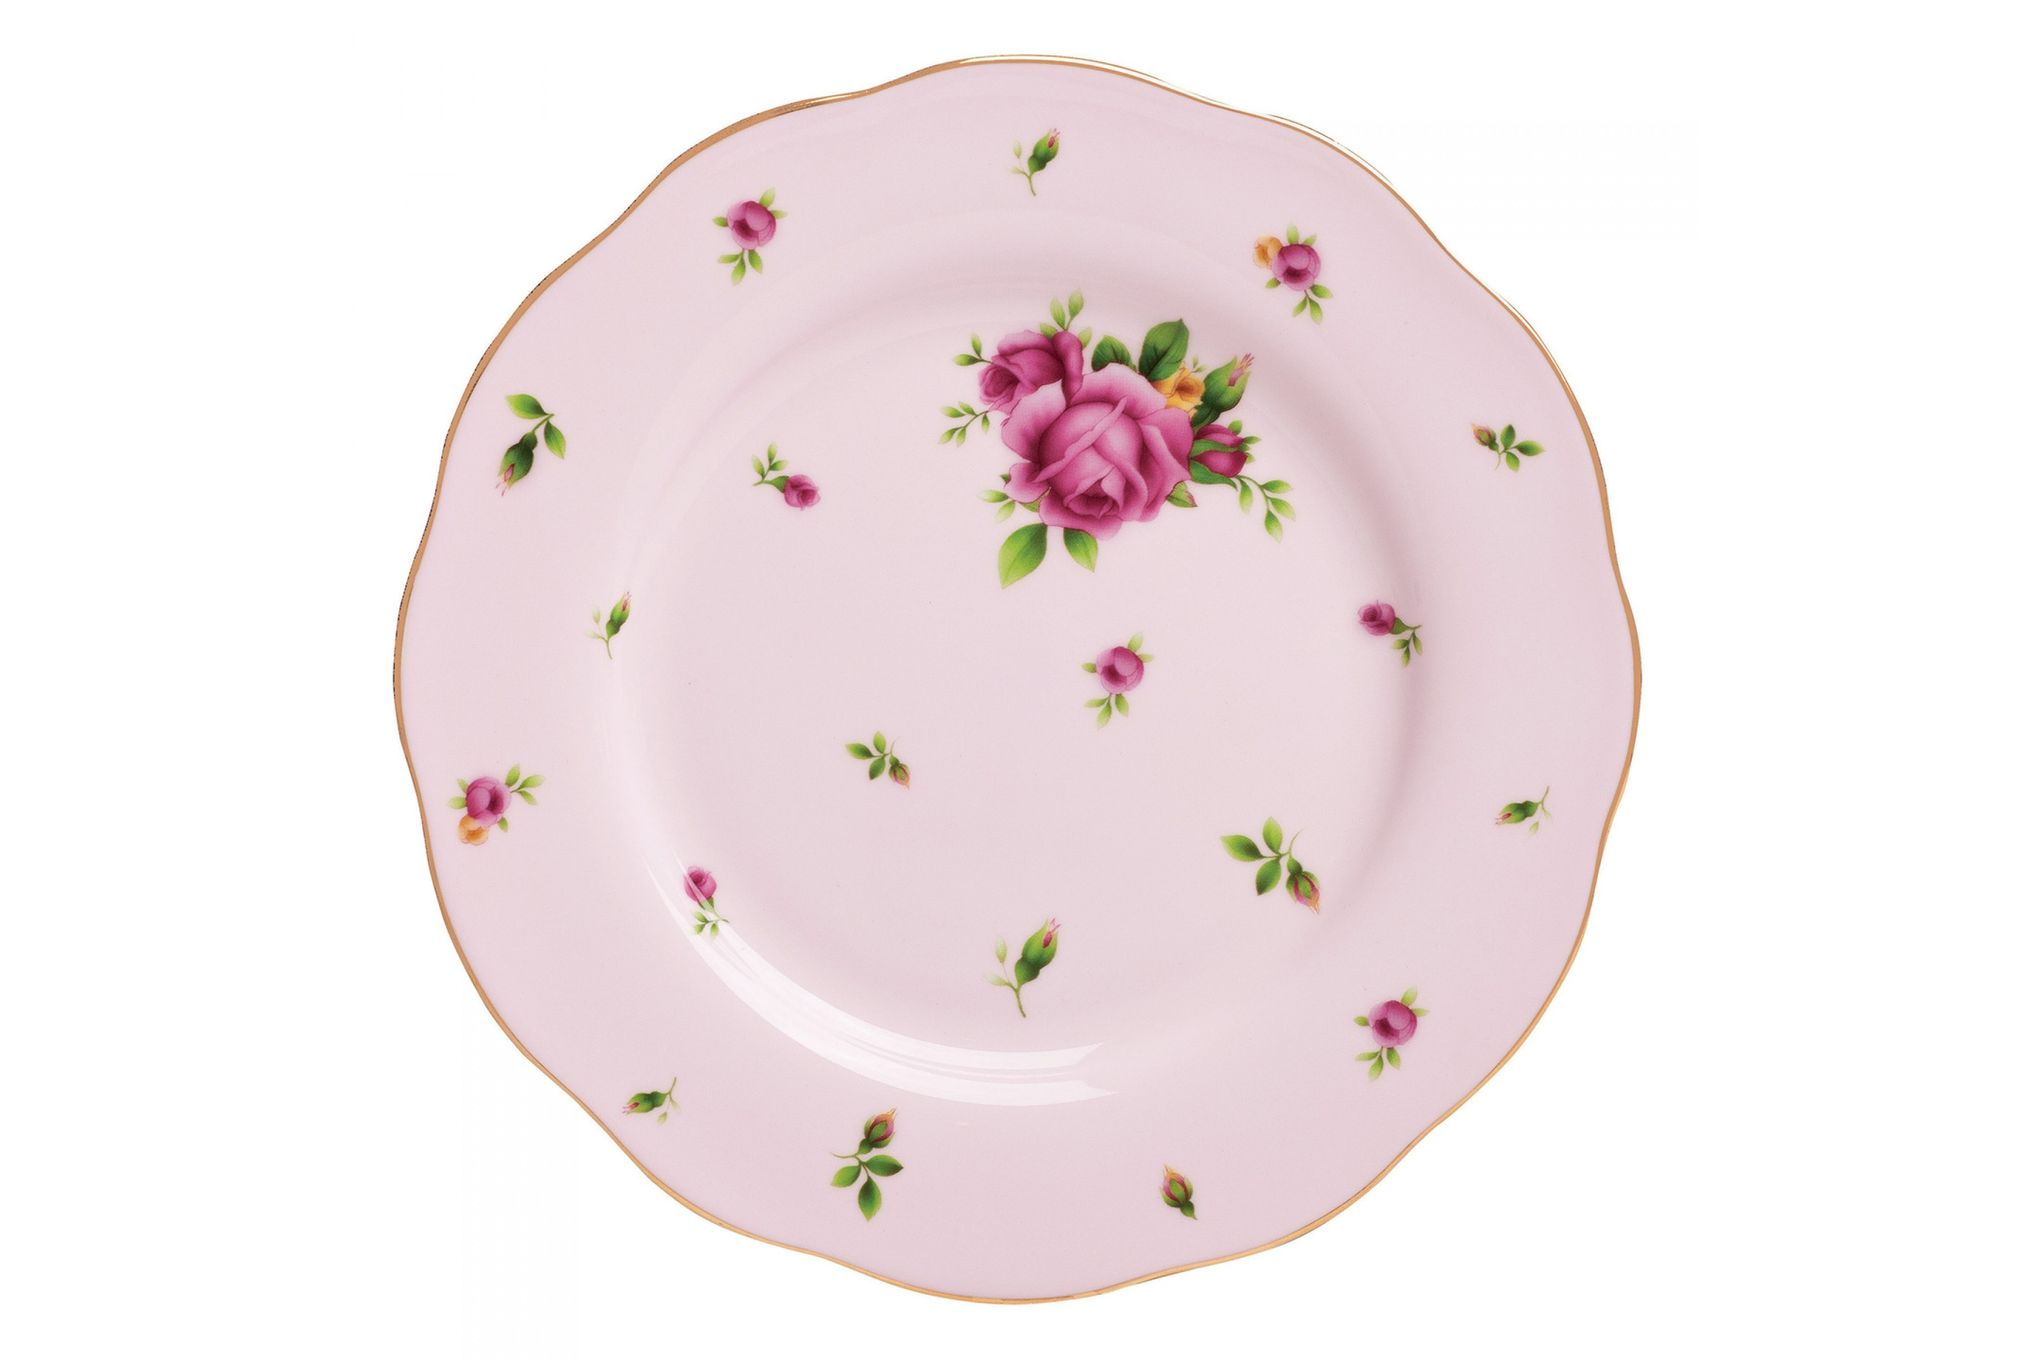 Royal Albert New Country Roses Pink Side Plate 20cm thumb 1